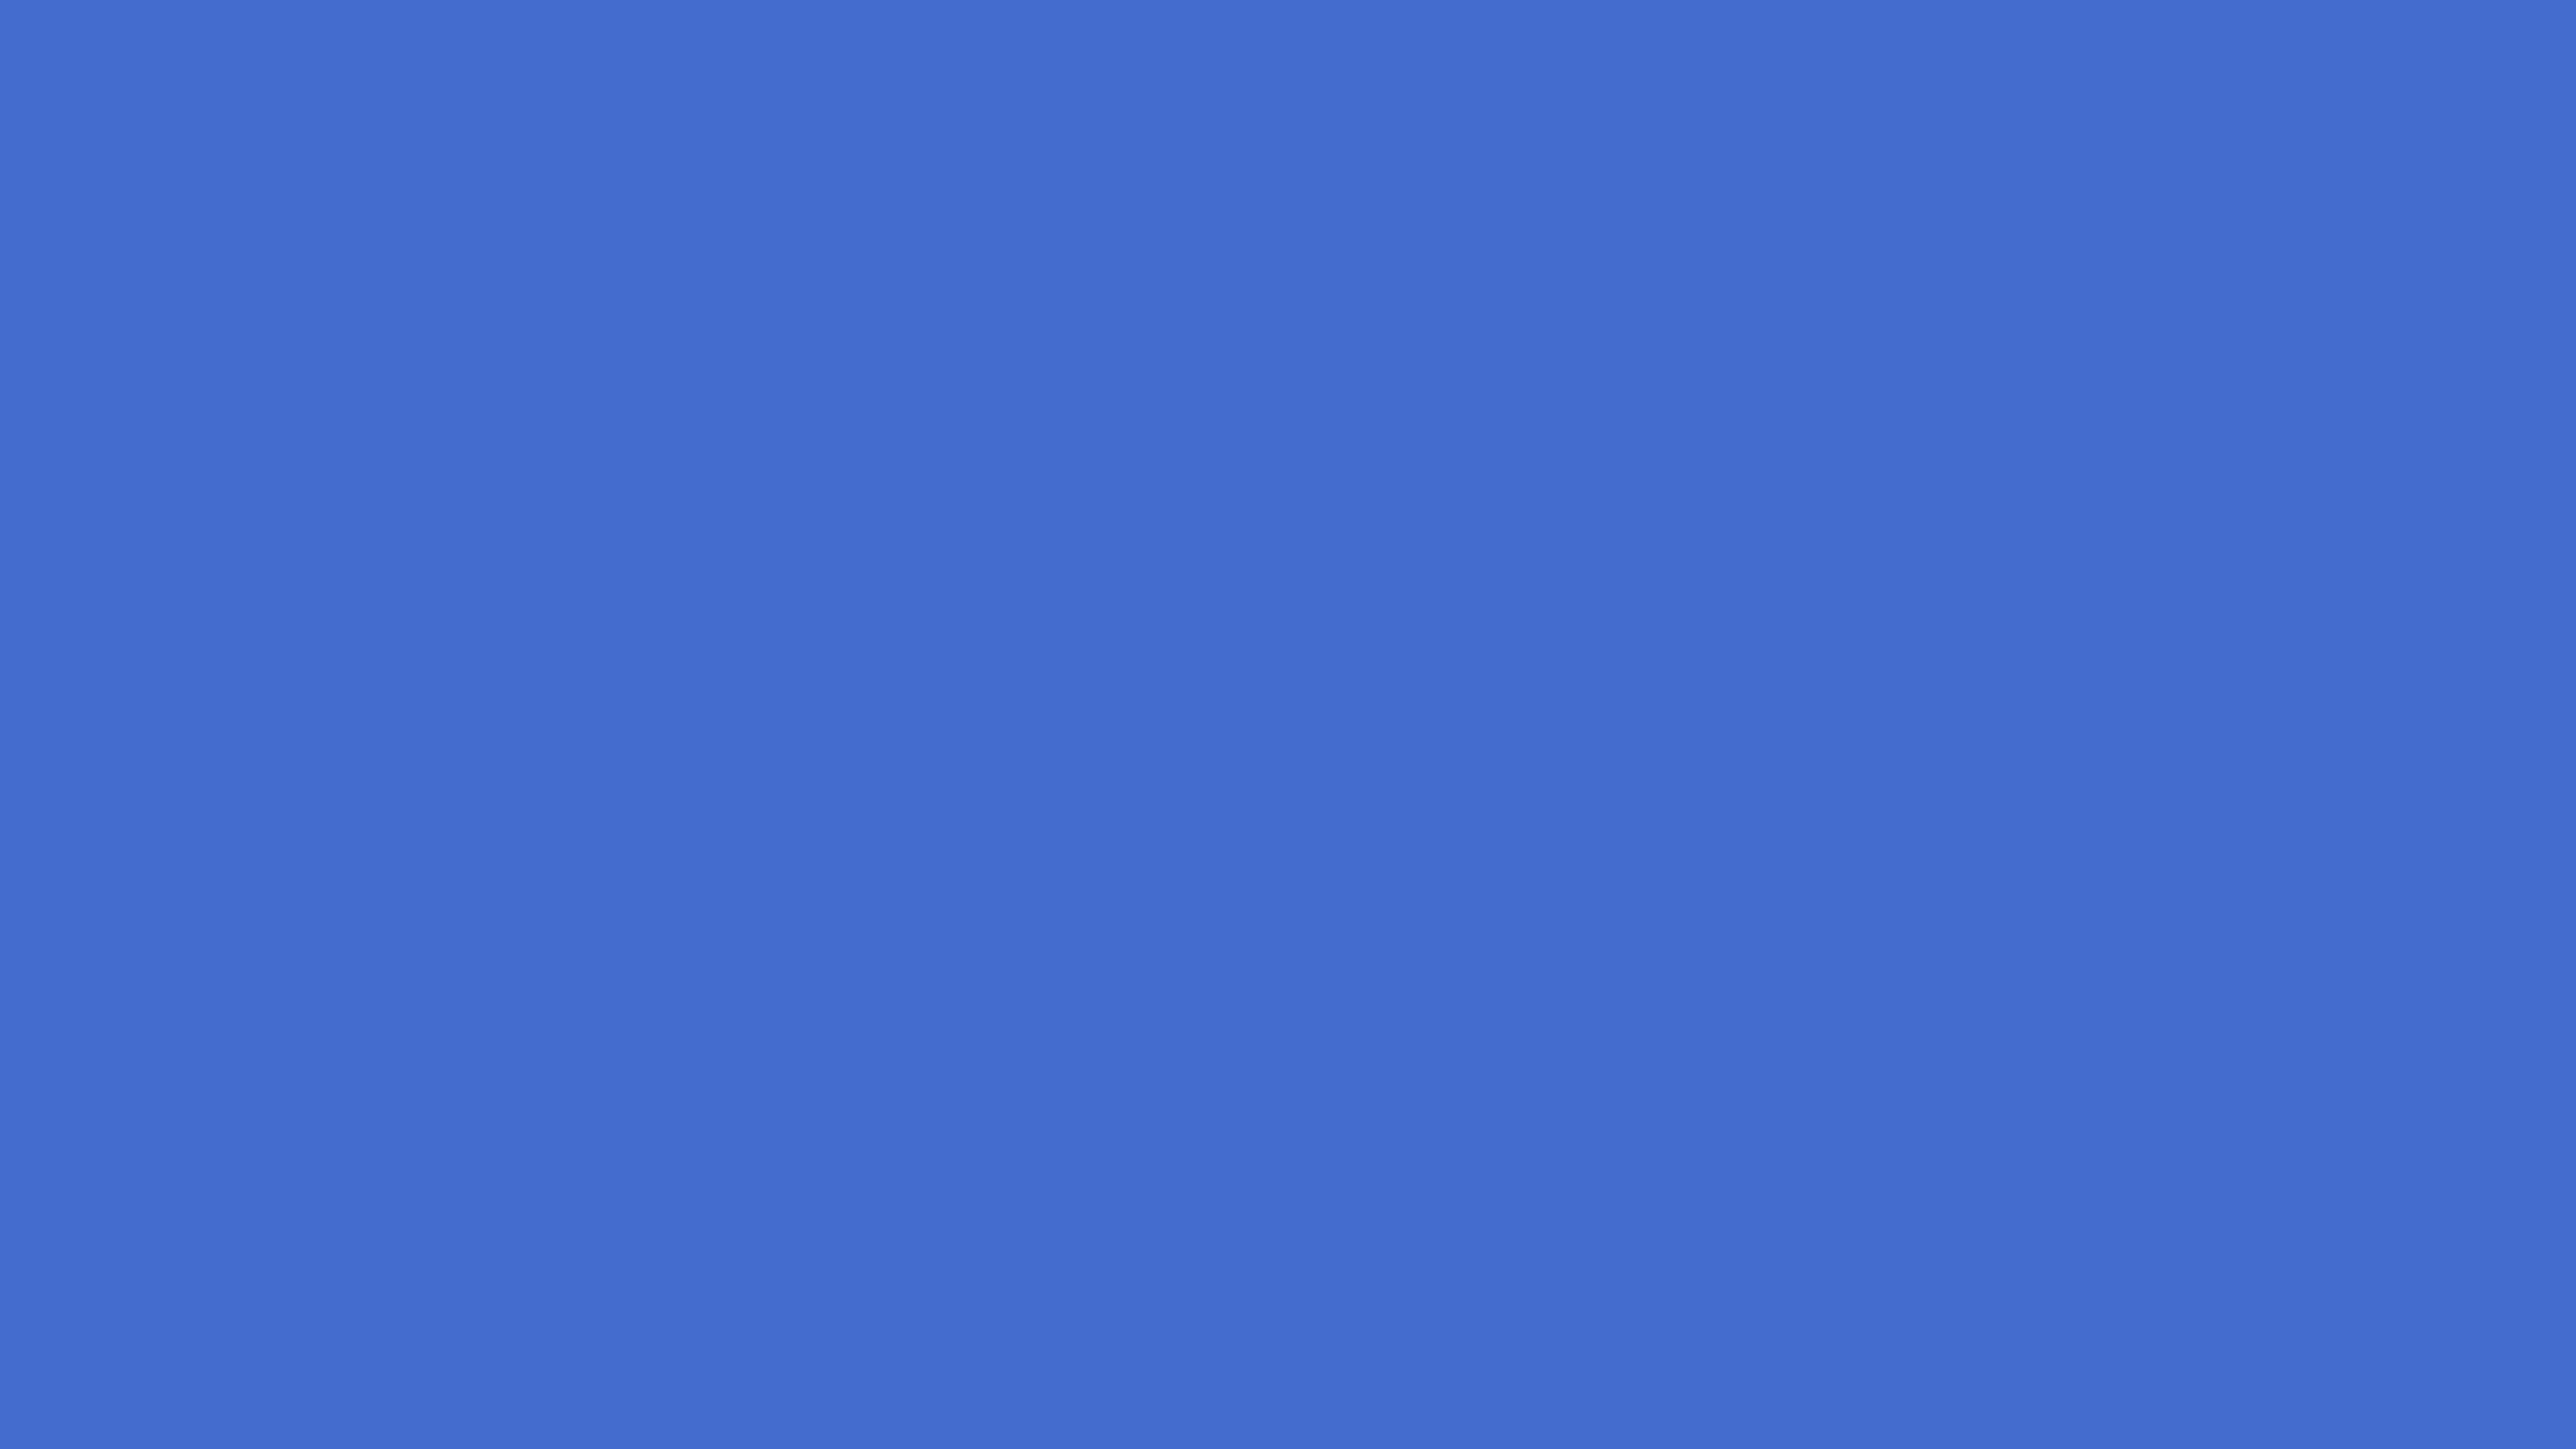 5120x2880 Han Blue Solid Color Background